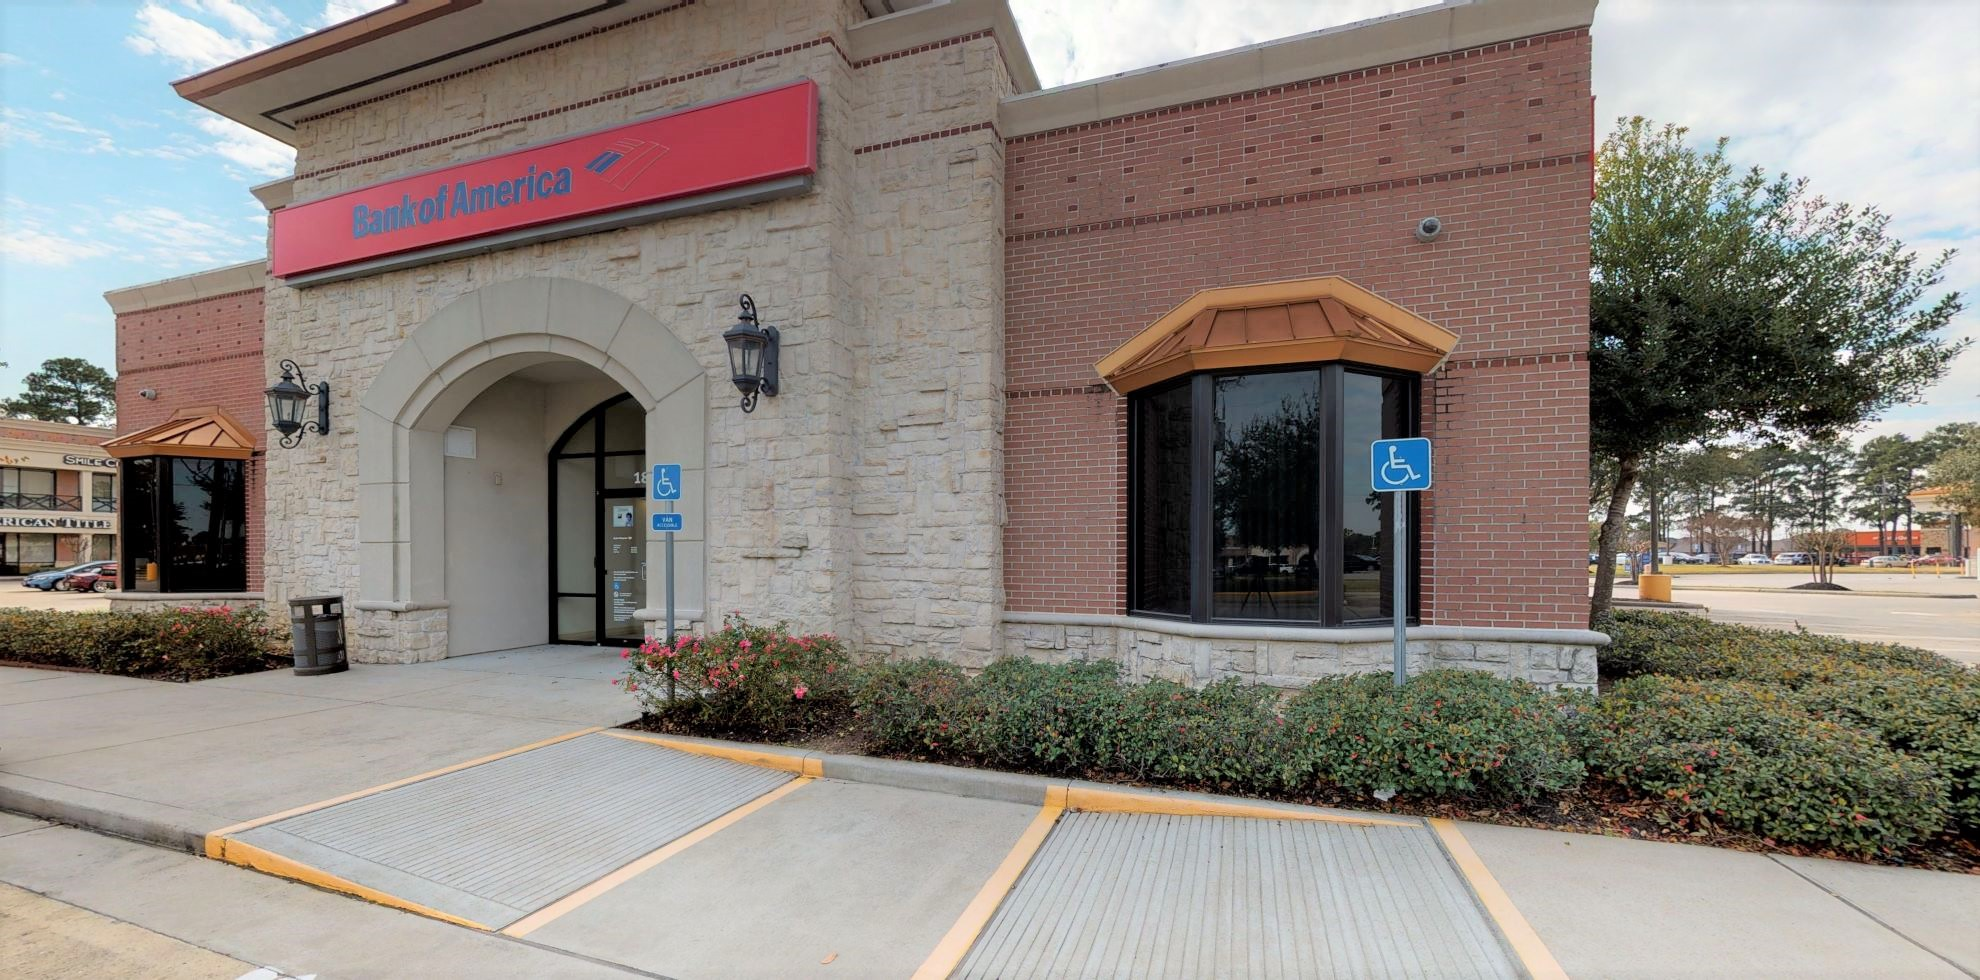 Bank of America financial center with drive-thru ATM   18505 Champion Forest Dr, Spring, TX 77379